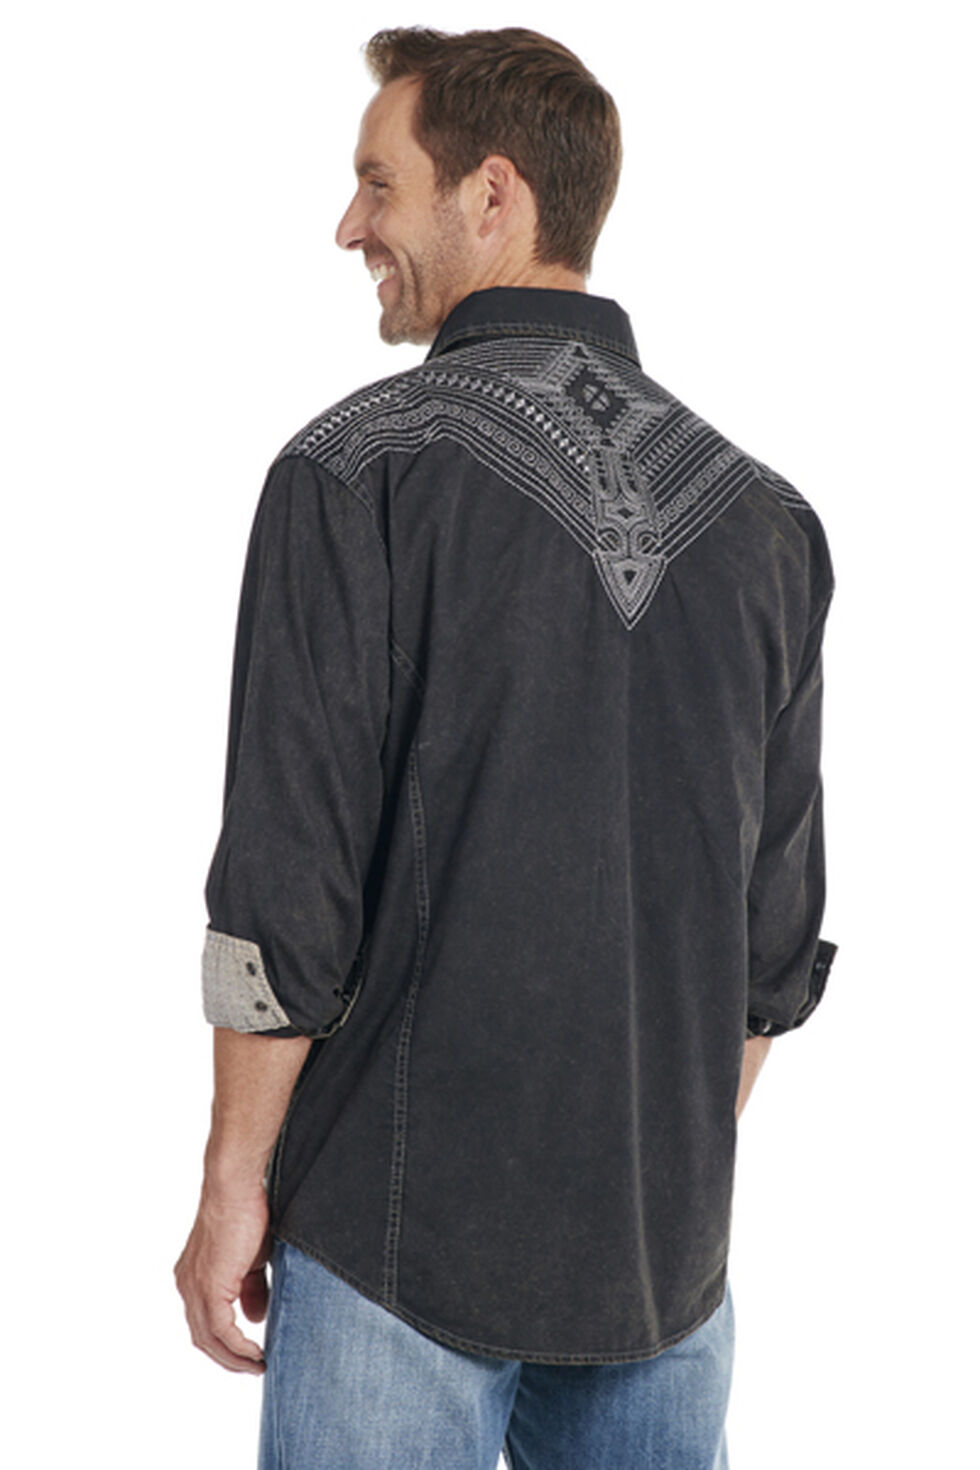 Cowboy Up Men's Black Embroidered Yoke Solid Shirt, Black, hi-res